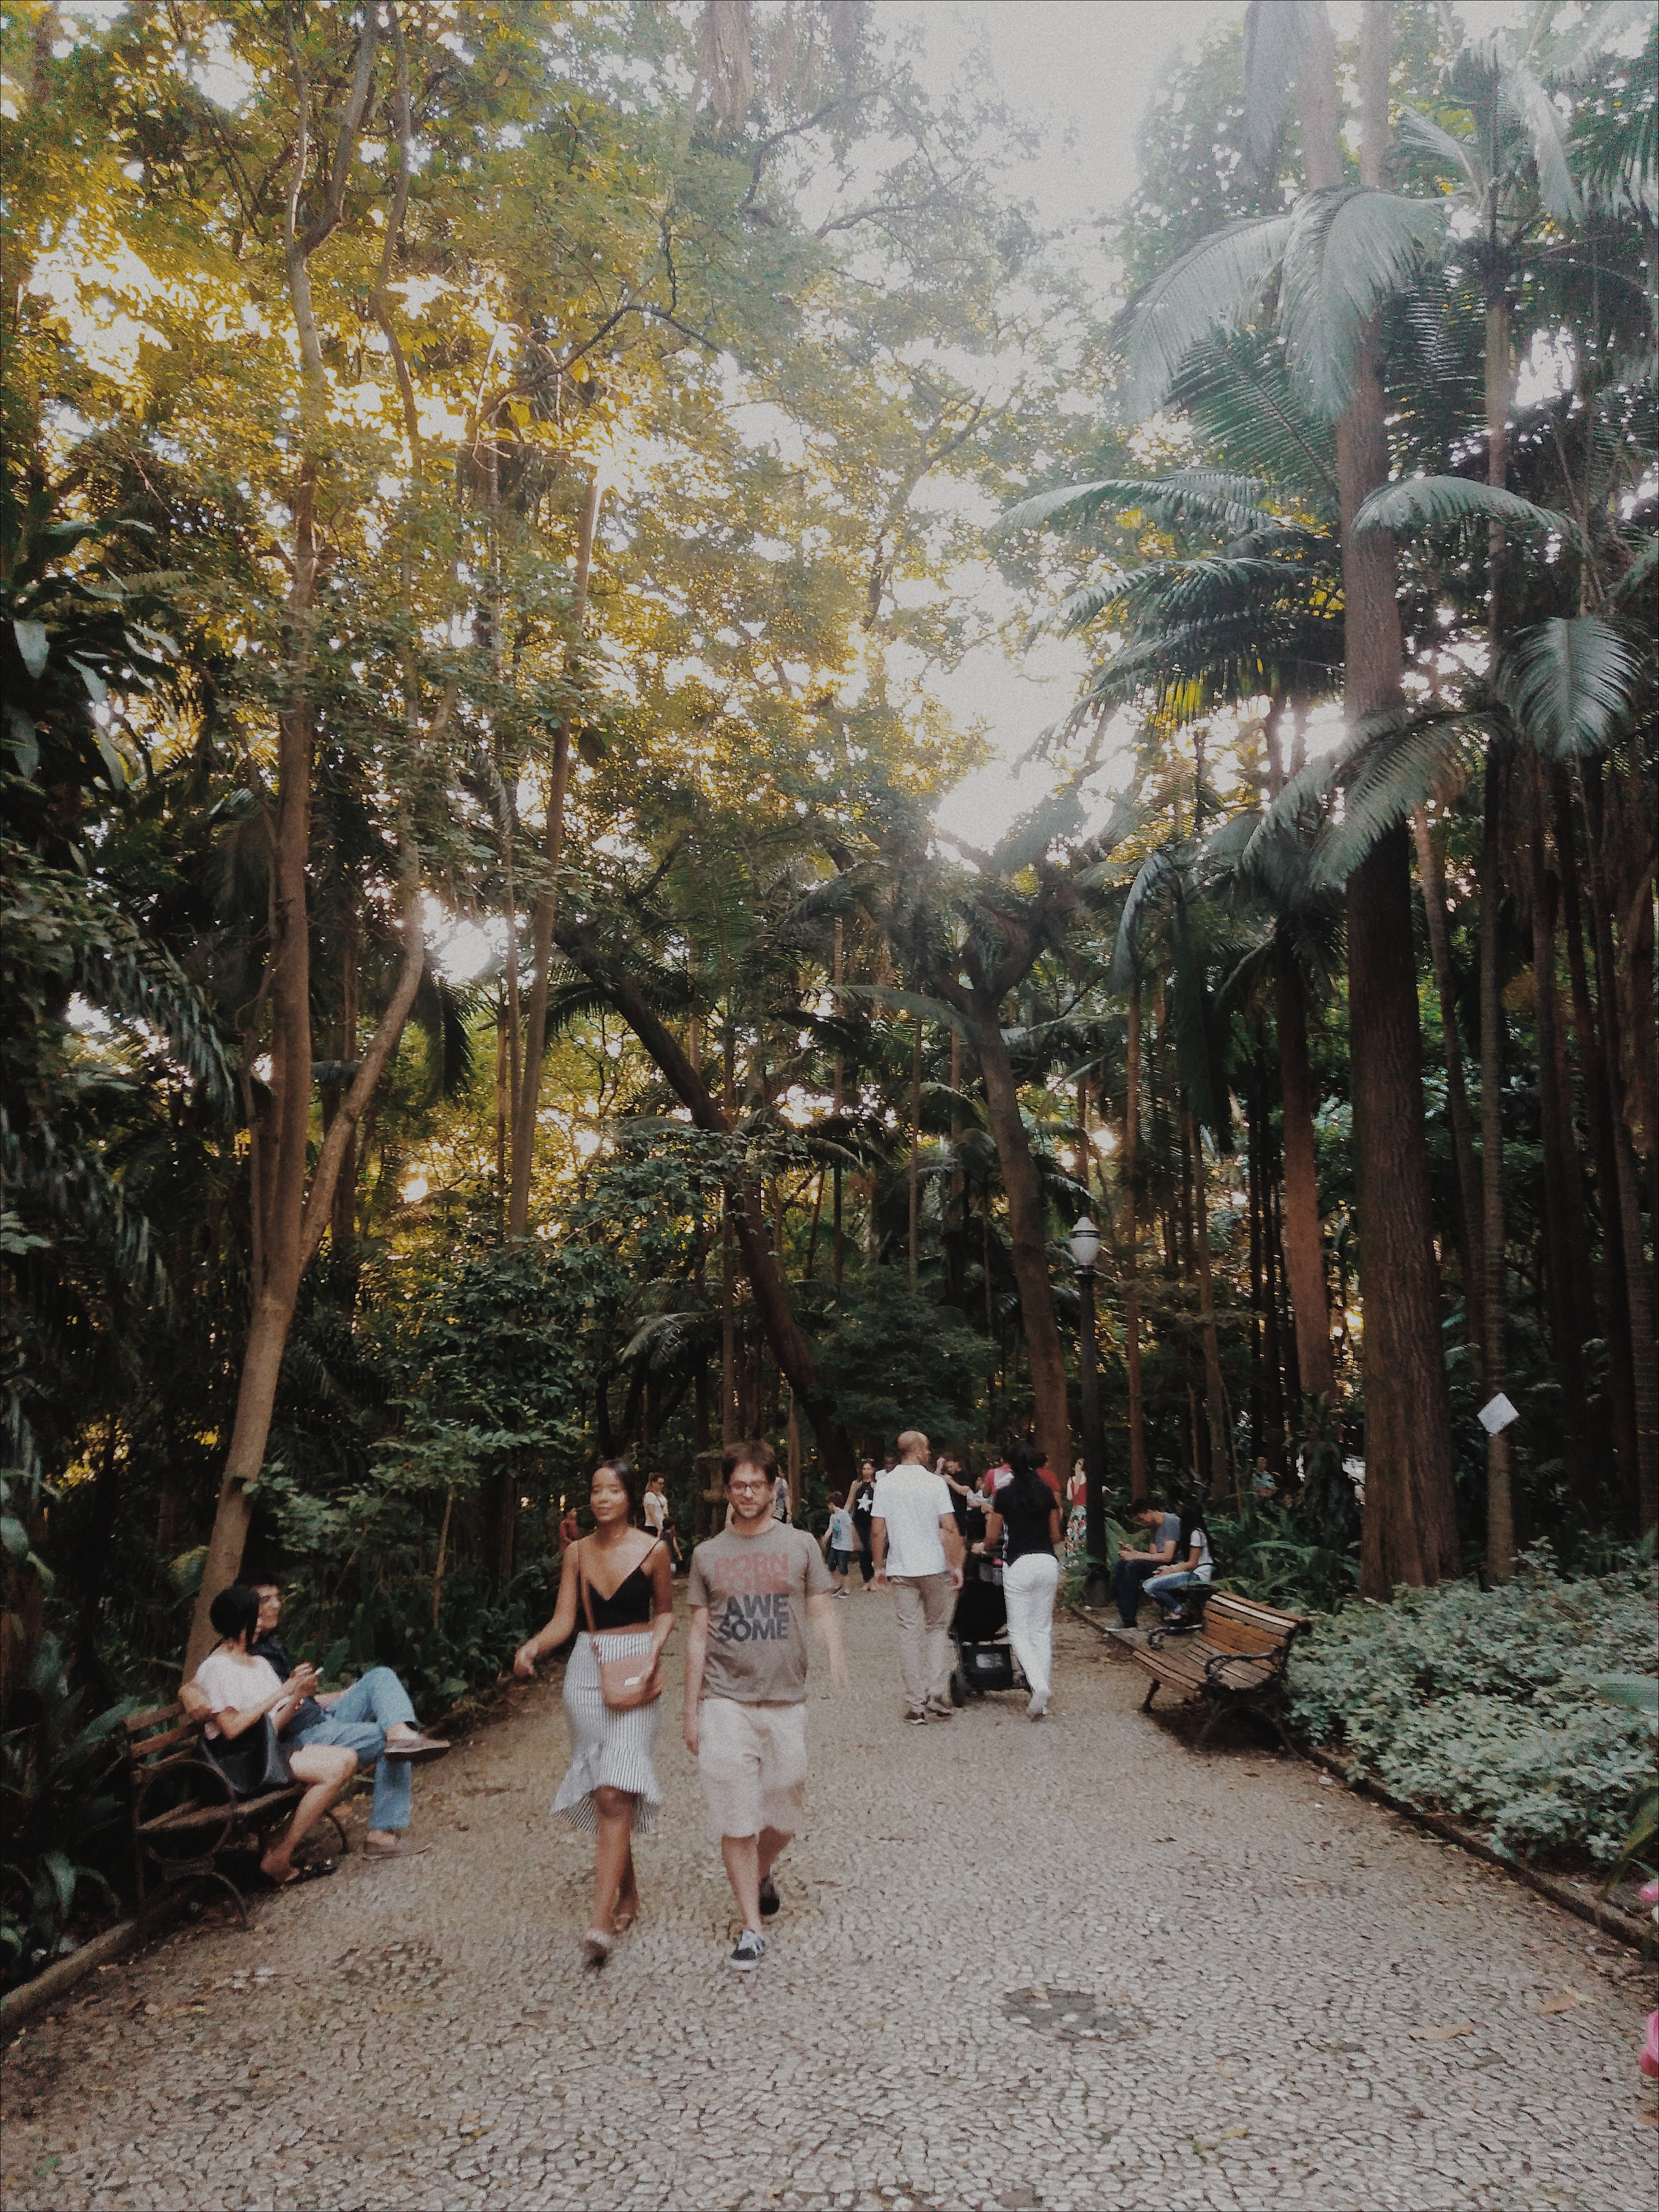 People walking in a park with large trees photo